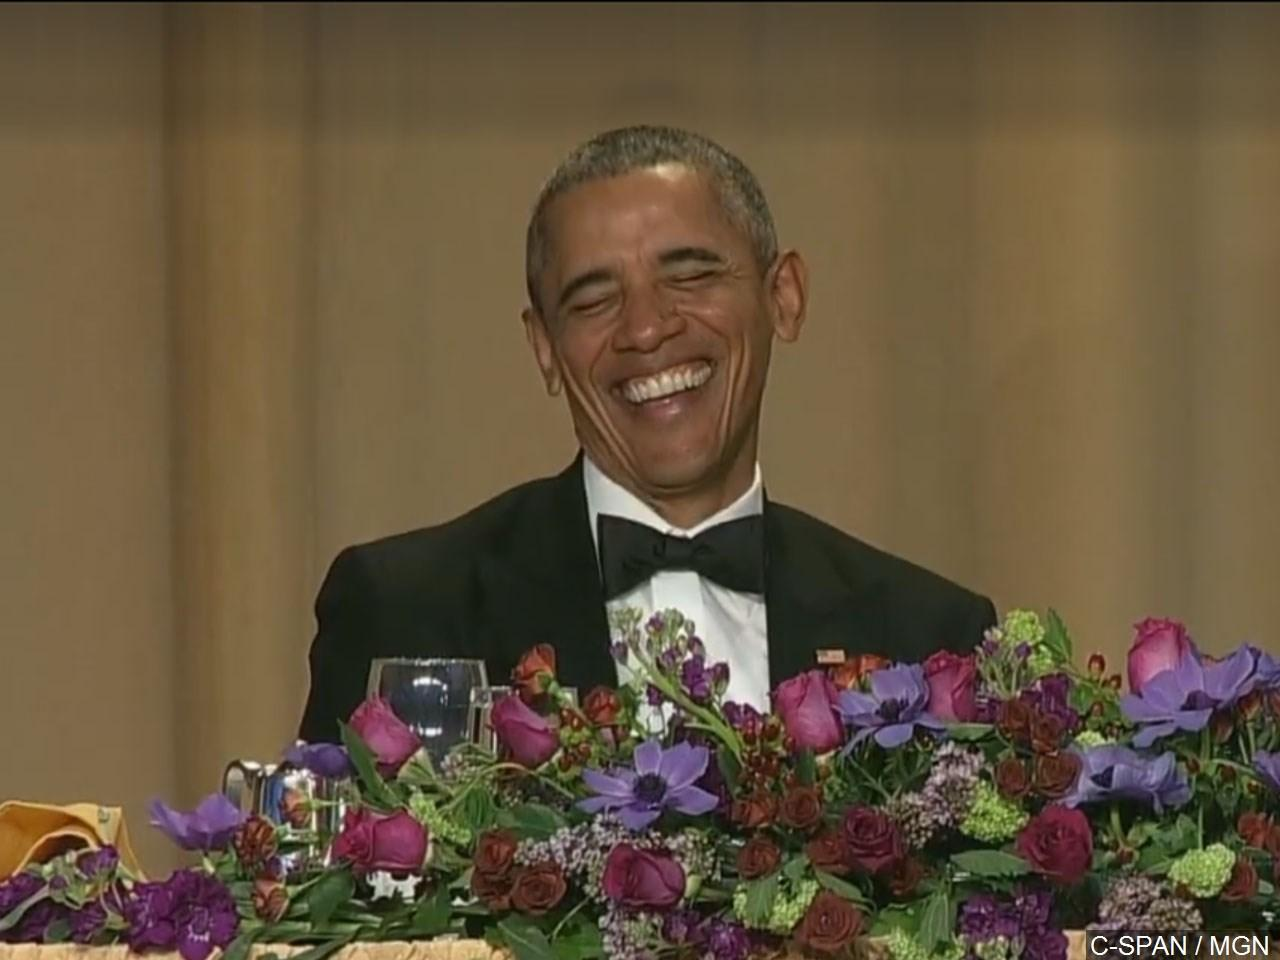 Obama laughing gif